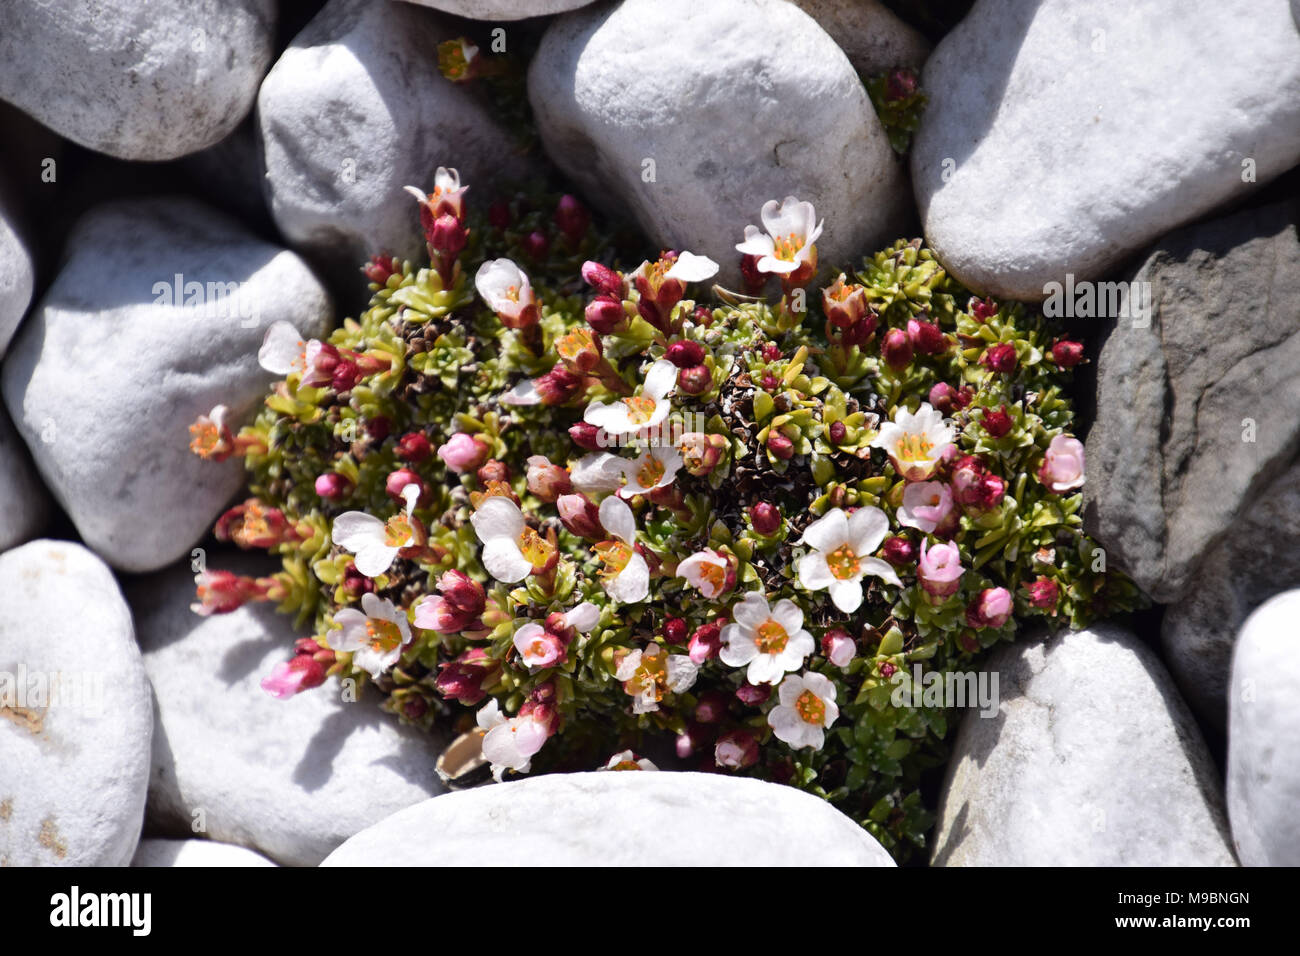 mini succulent plant with white pebbles in spring - Stock Image